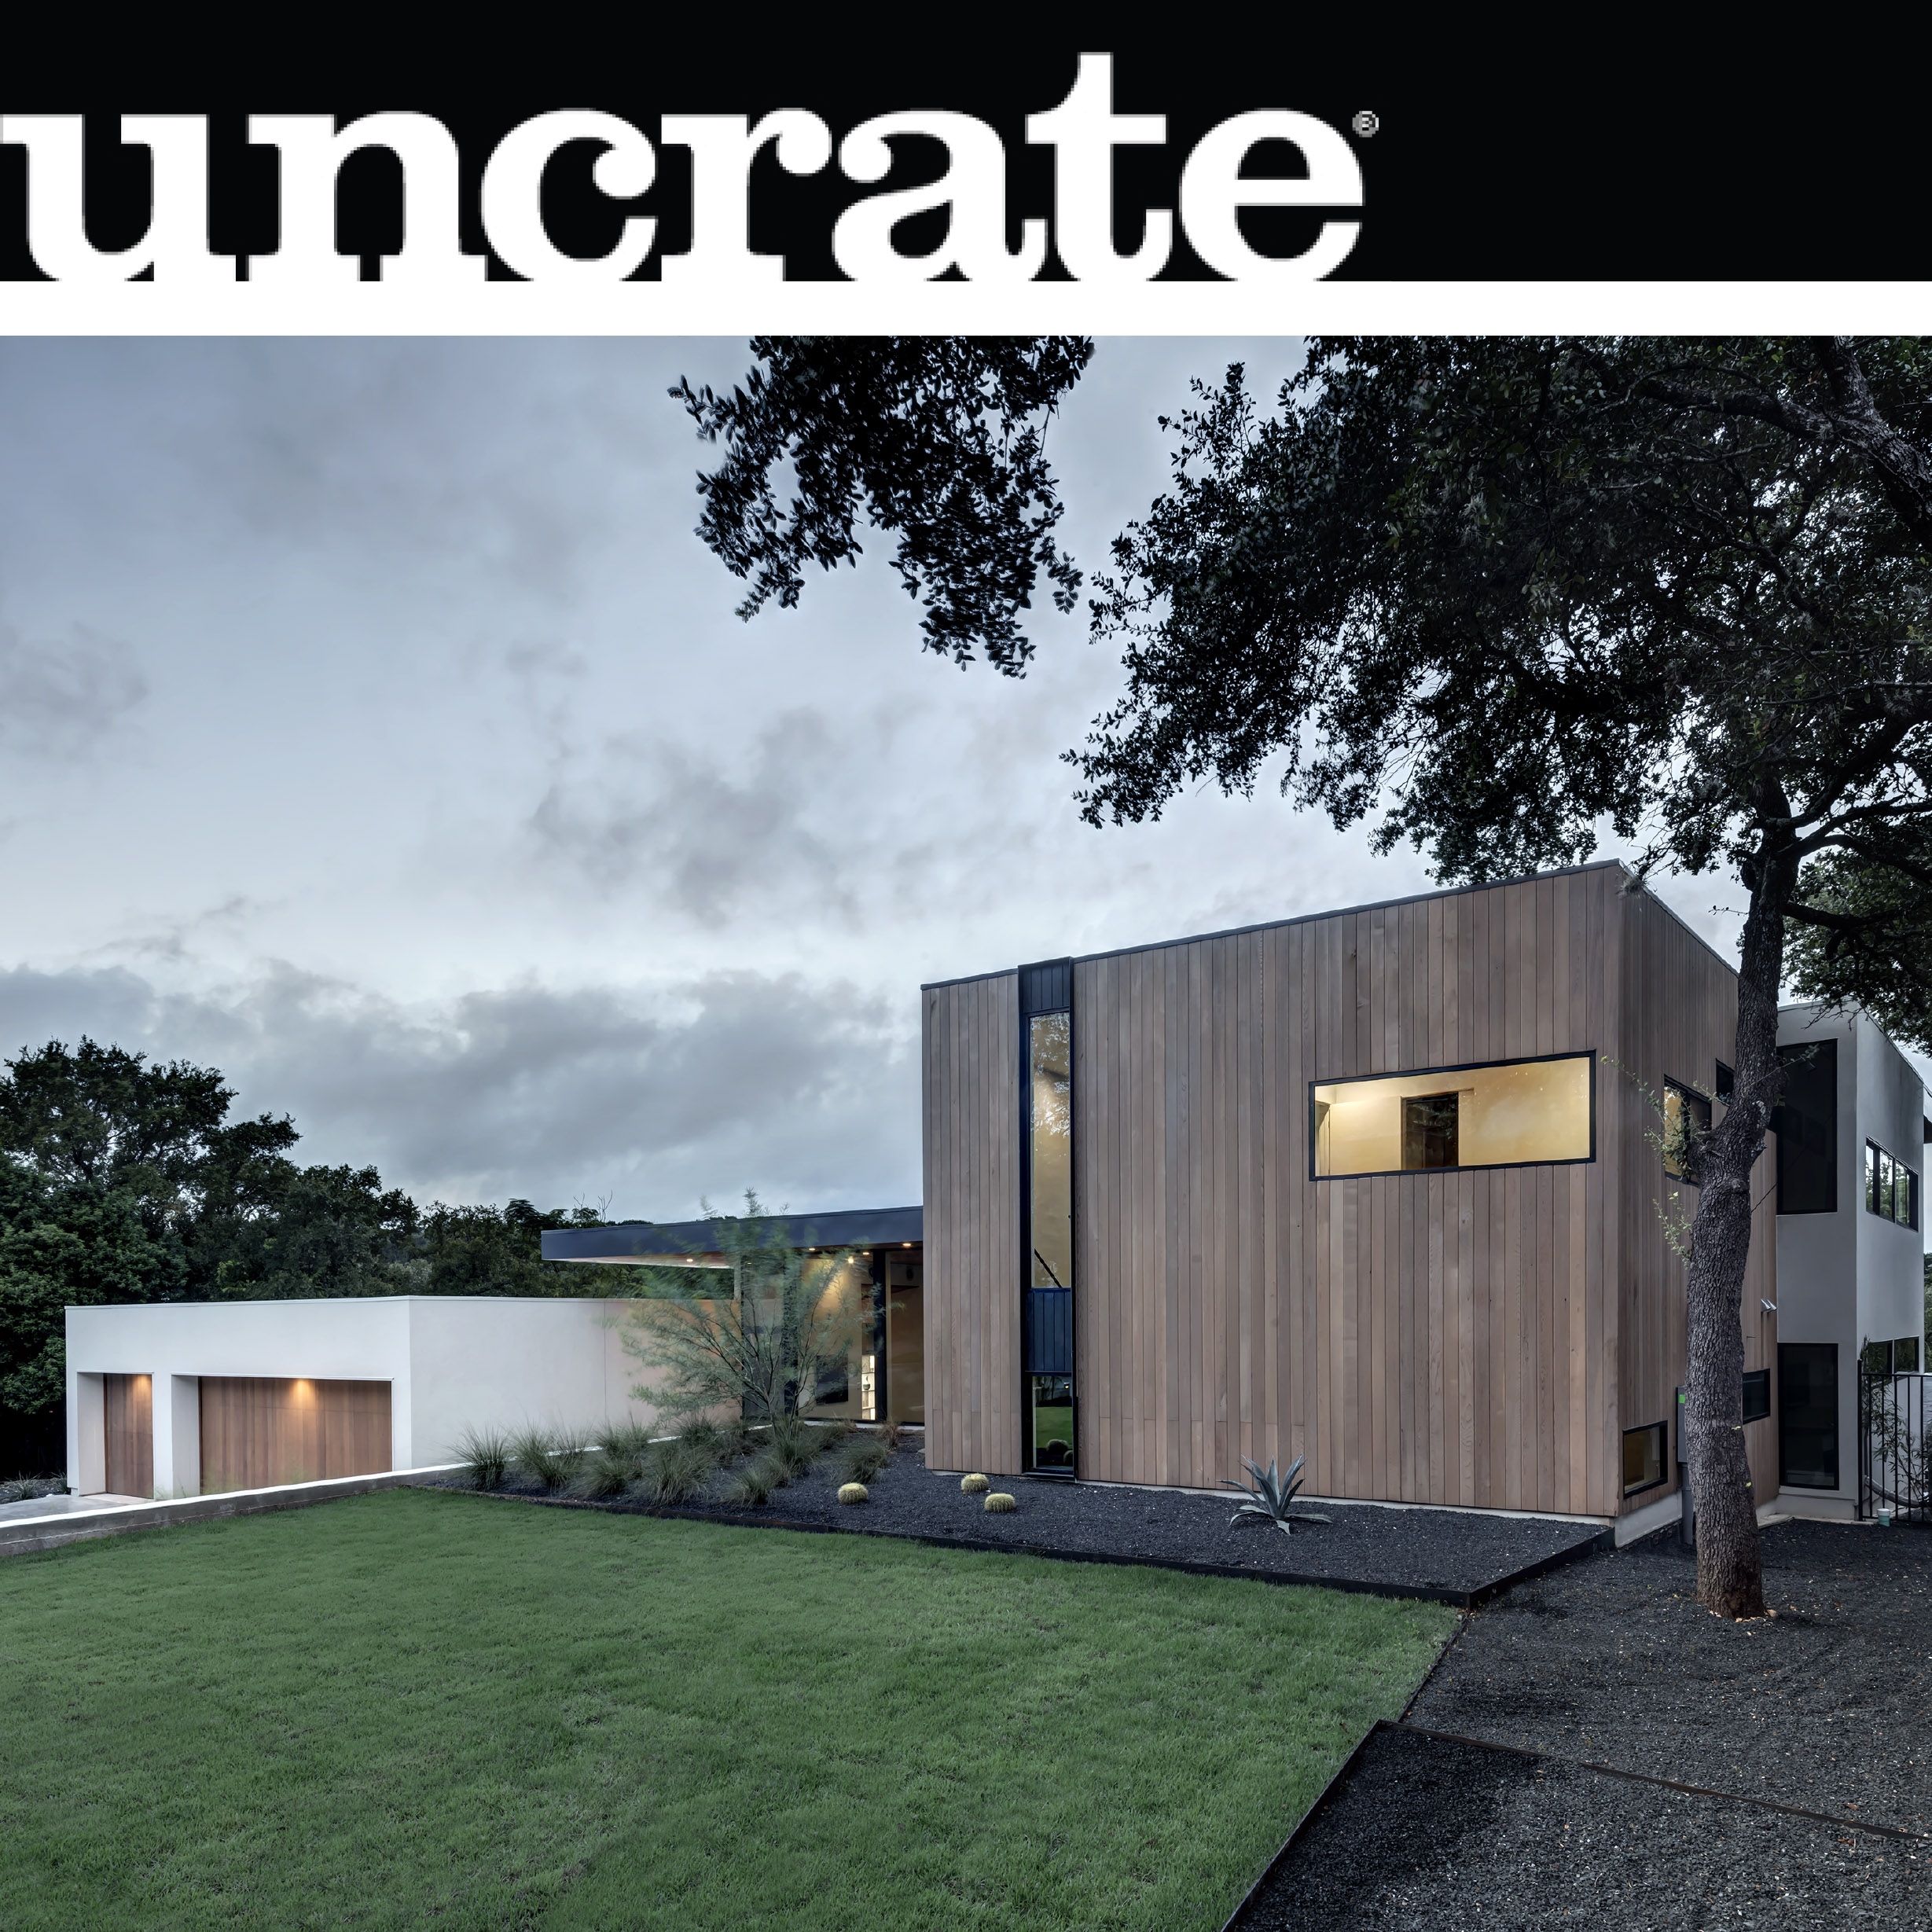 Uncrate_2016_11_Bracketed Space House